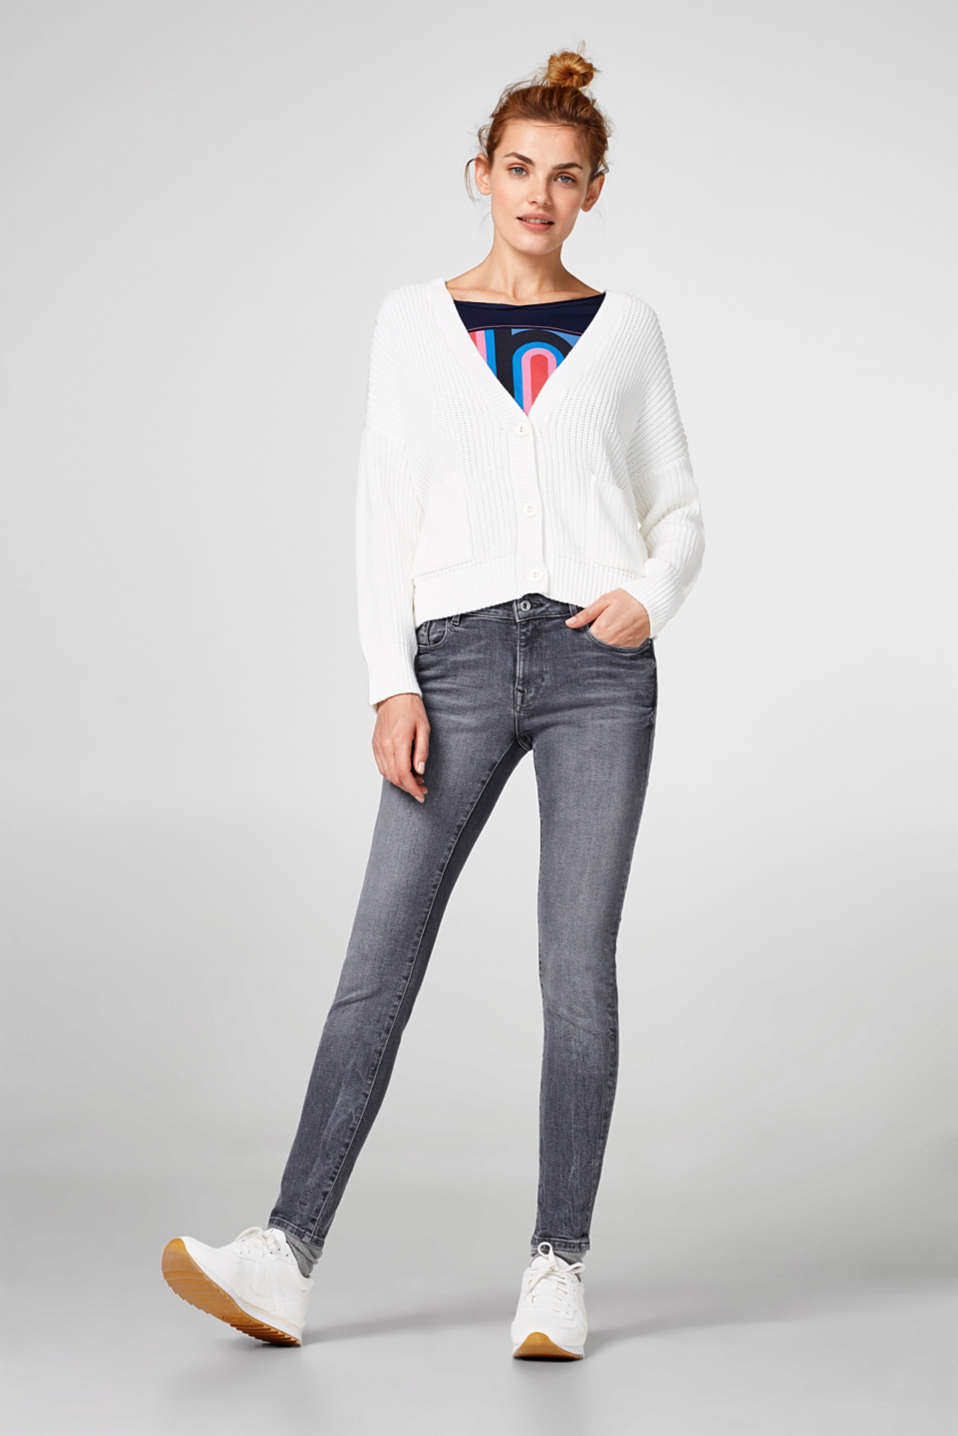 Grey, ankle-length jeans